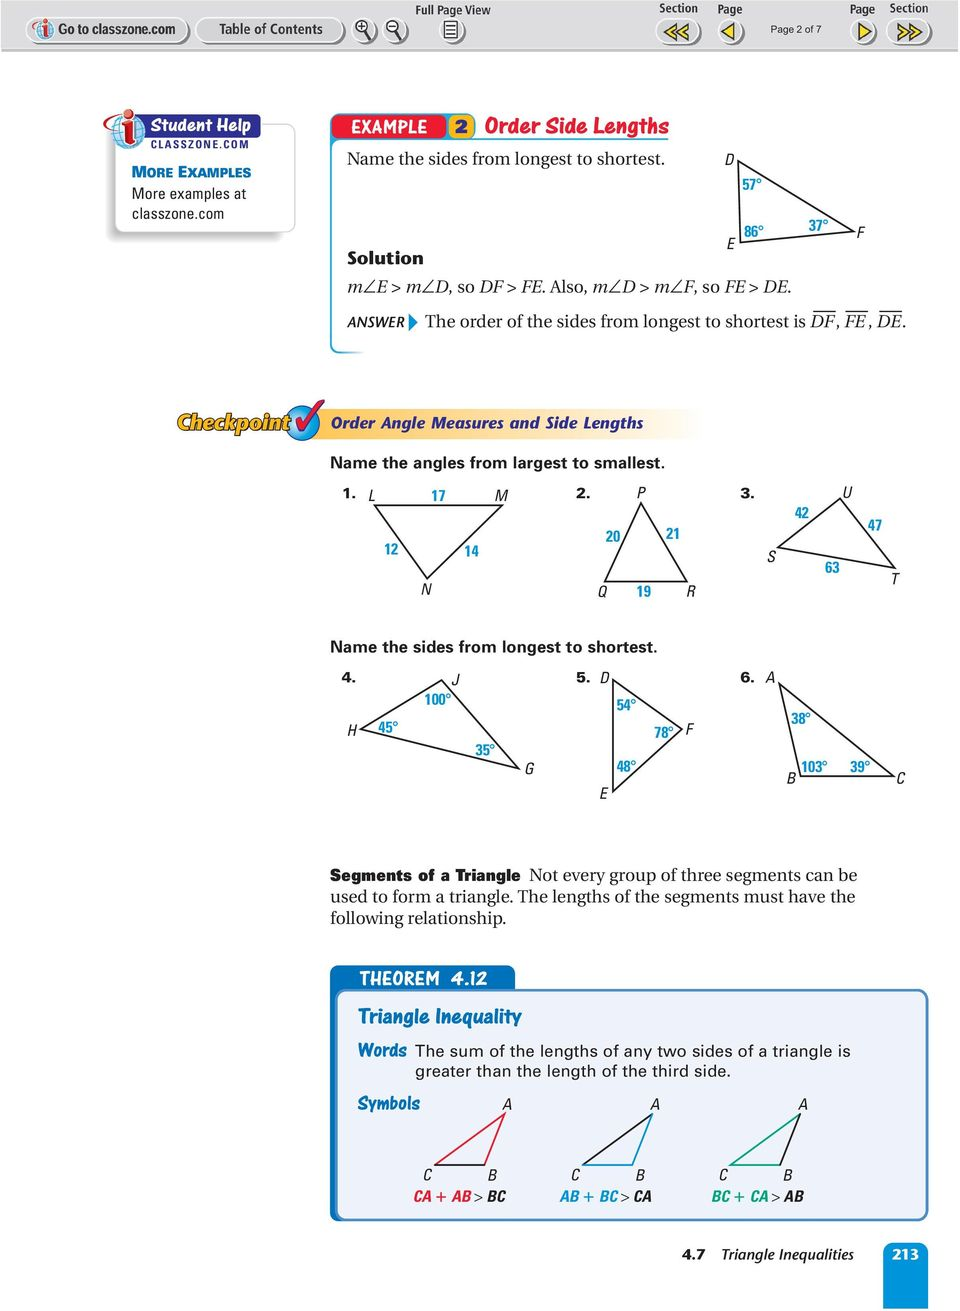 . 20 21 12 14 19 S 42 U 47 ame the sides from longest to shortest. 4... 100 4 4 78 G 48 8 10 9 Segments of a riangle ot every group of three segments can be used to form a triangle.